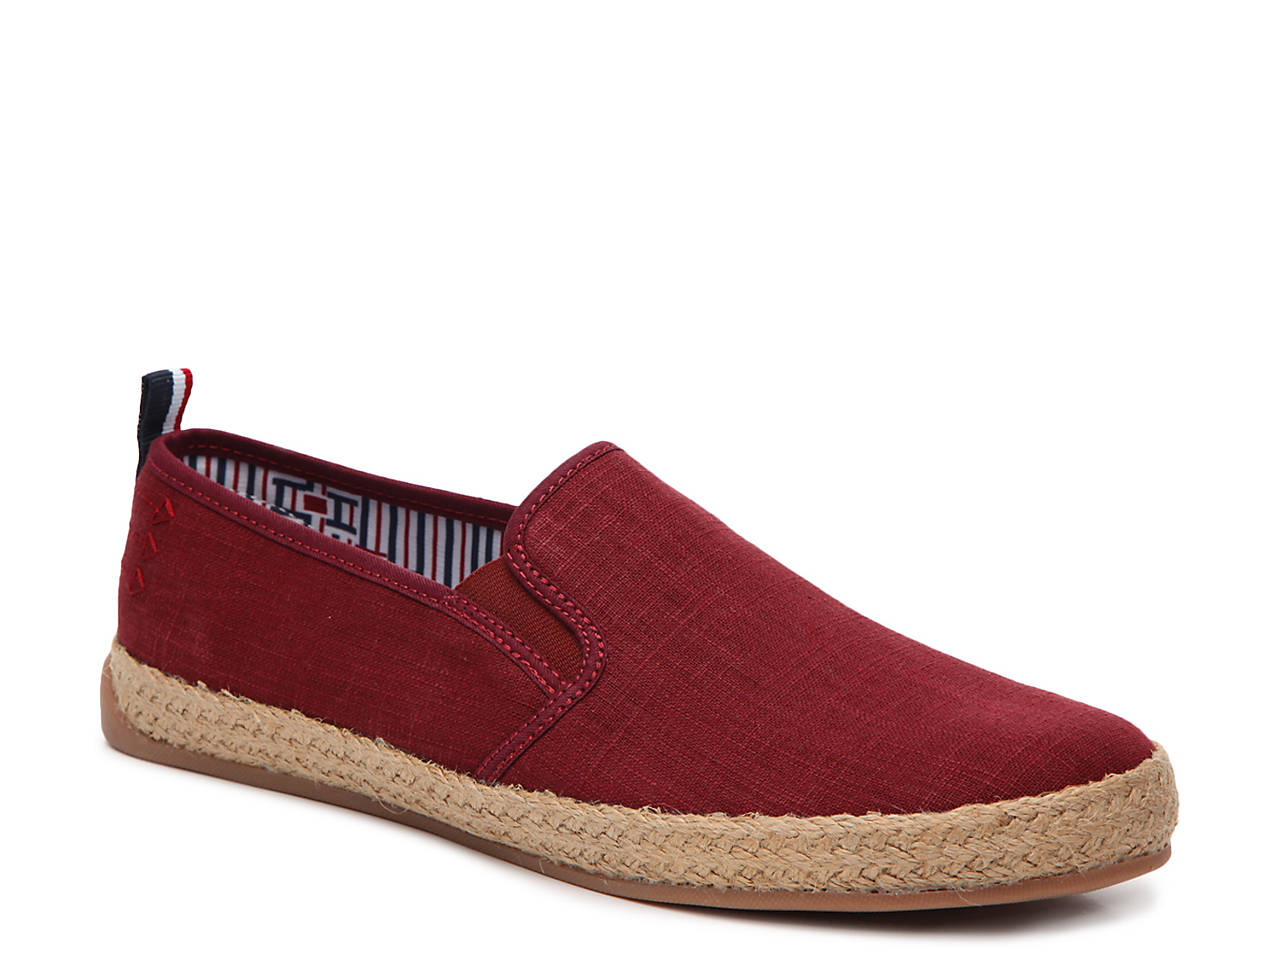 New Jenson Slip-On Casual Shoes